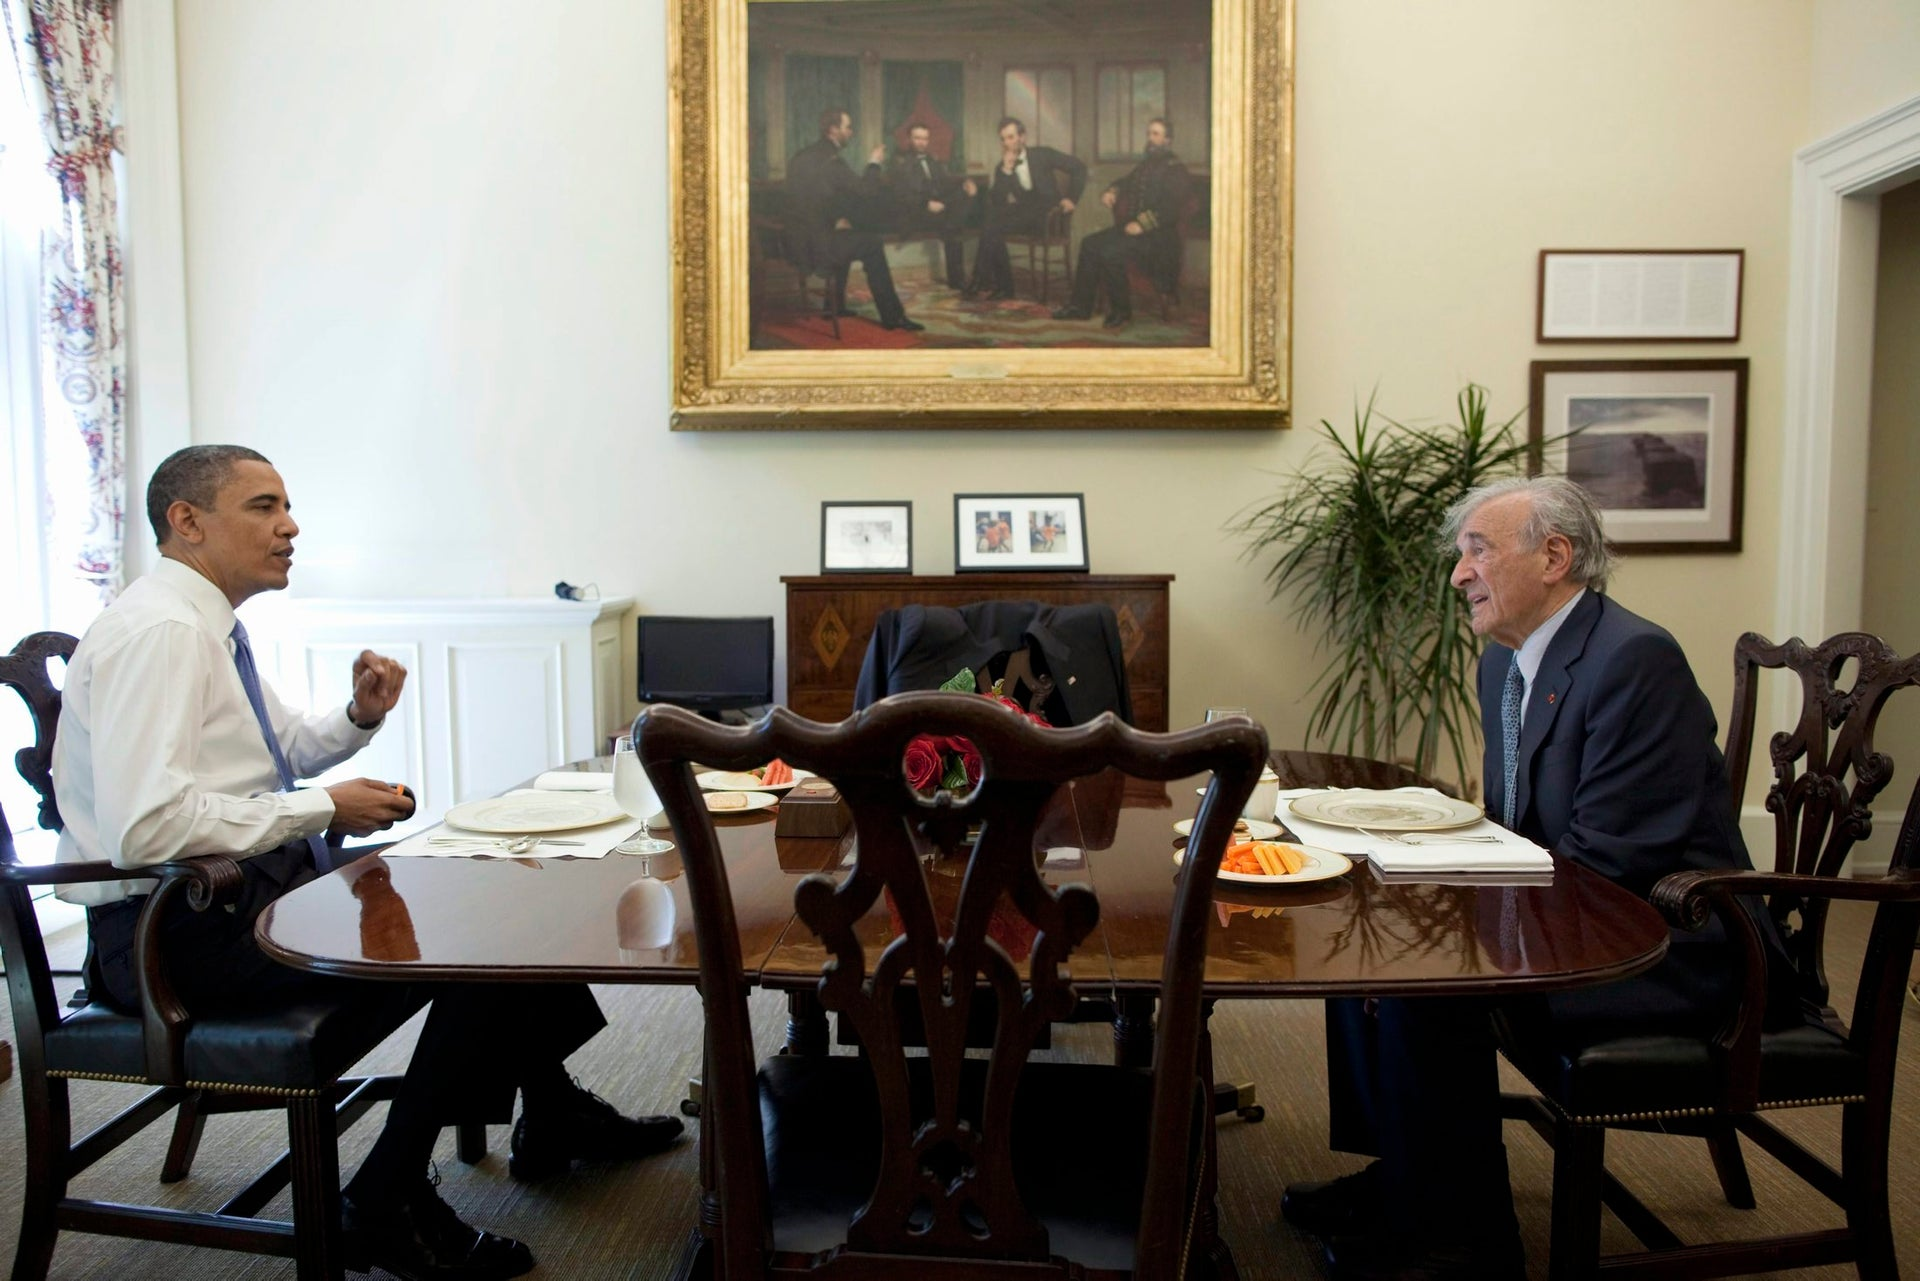 President Barack Obama has lunch with Elie Wiesel in the Oval Office Private Dining Room, May 4, 2010.